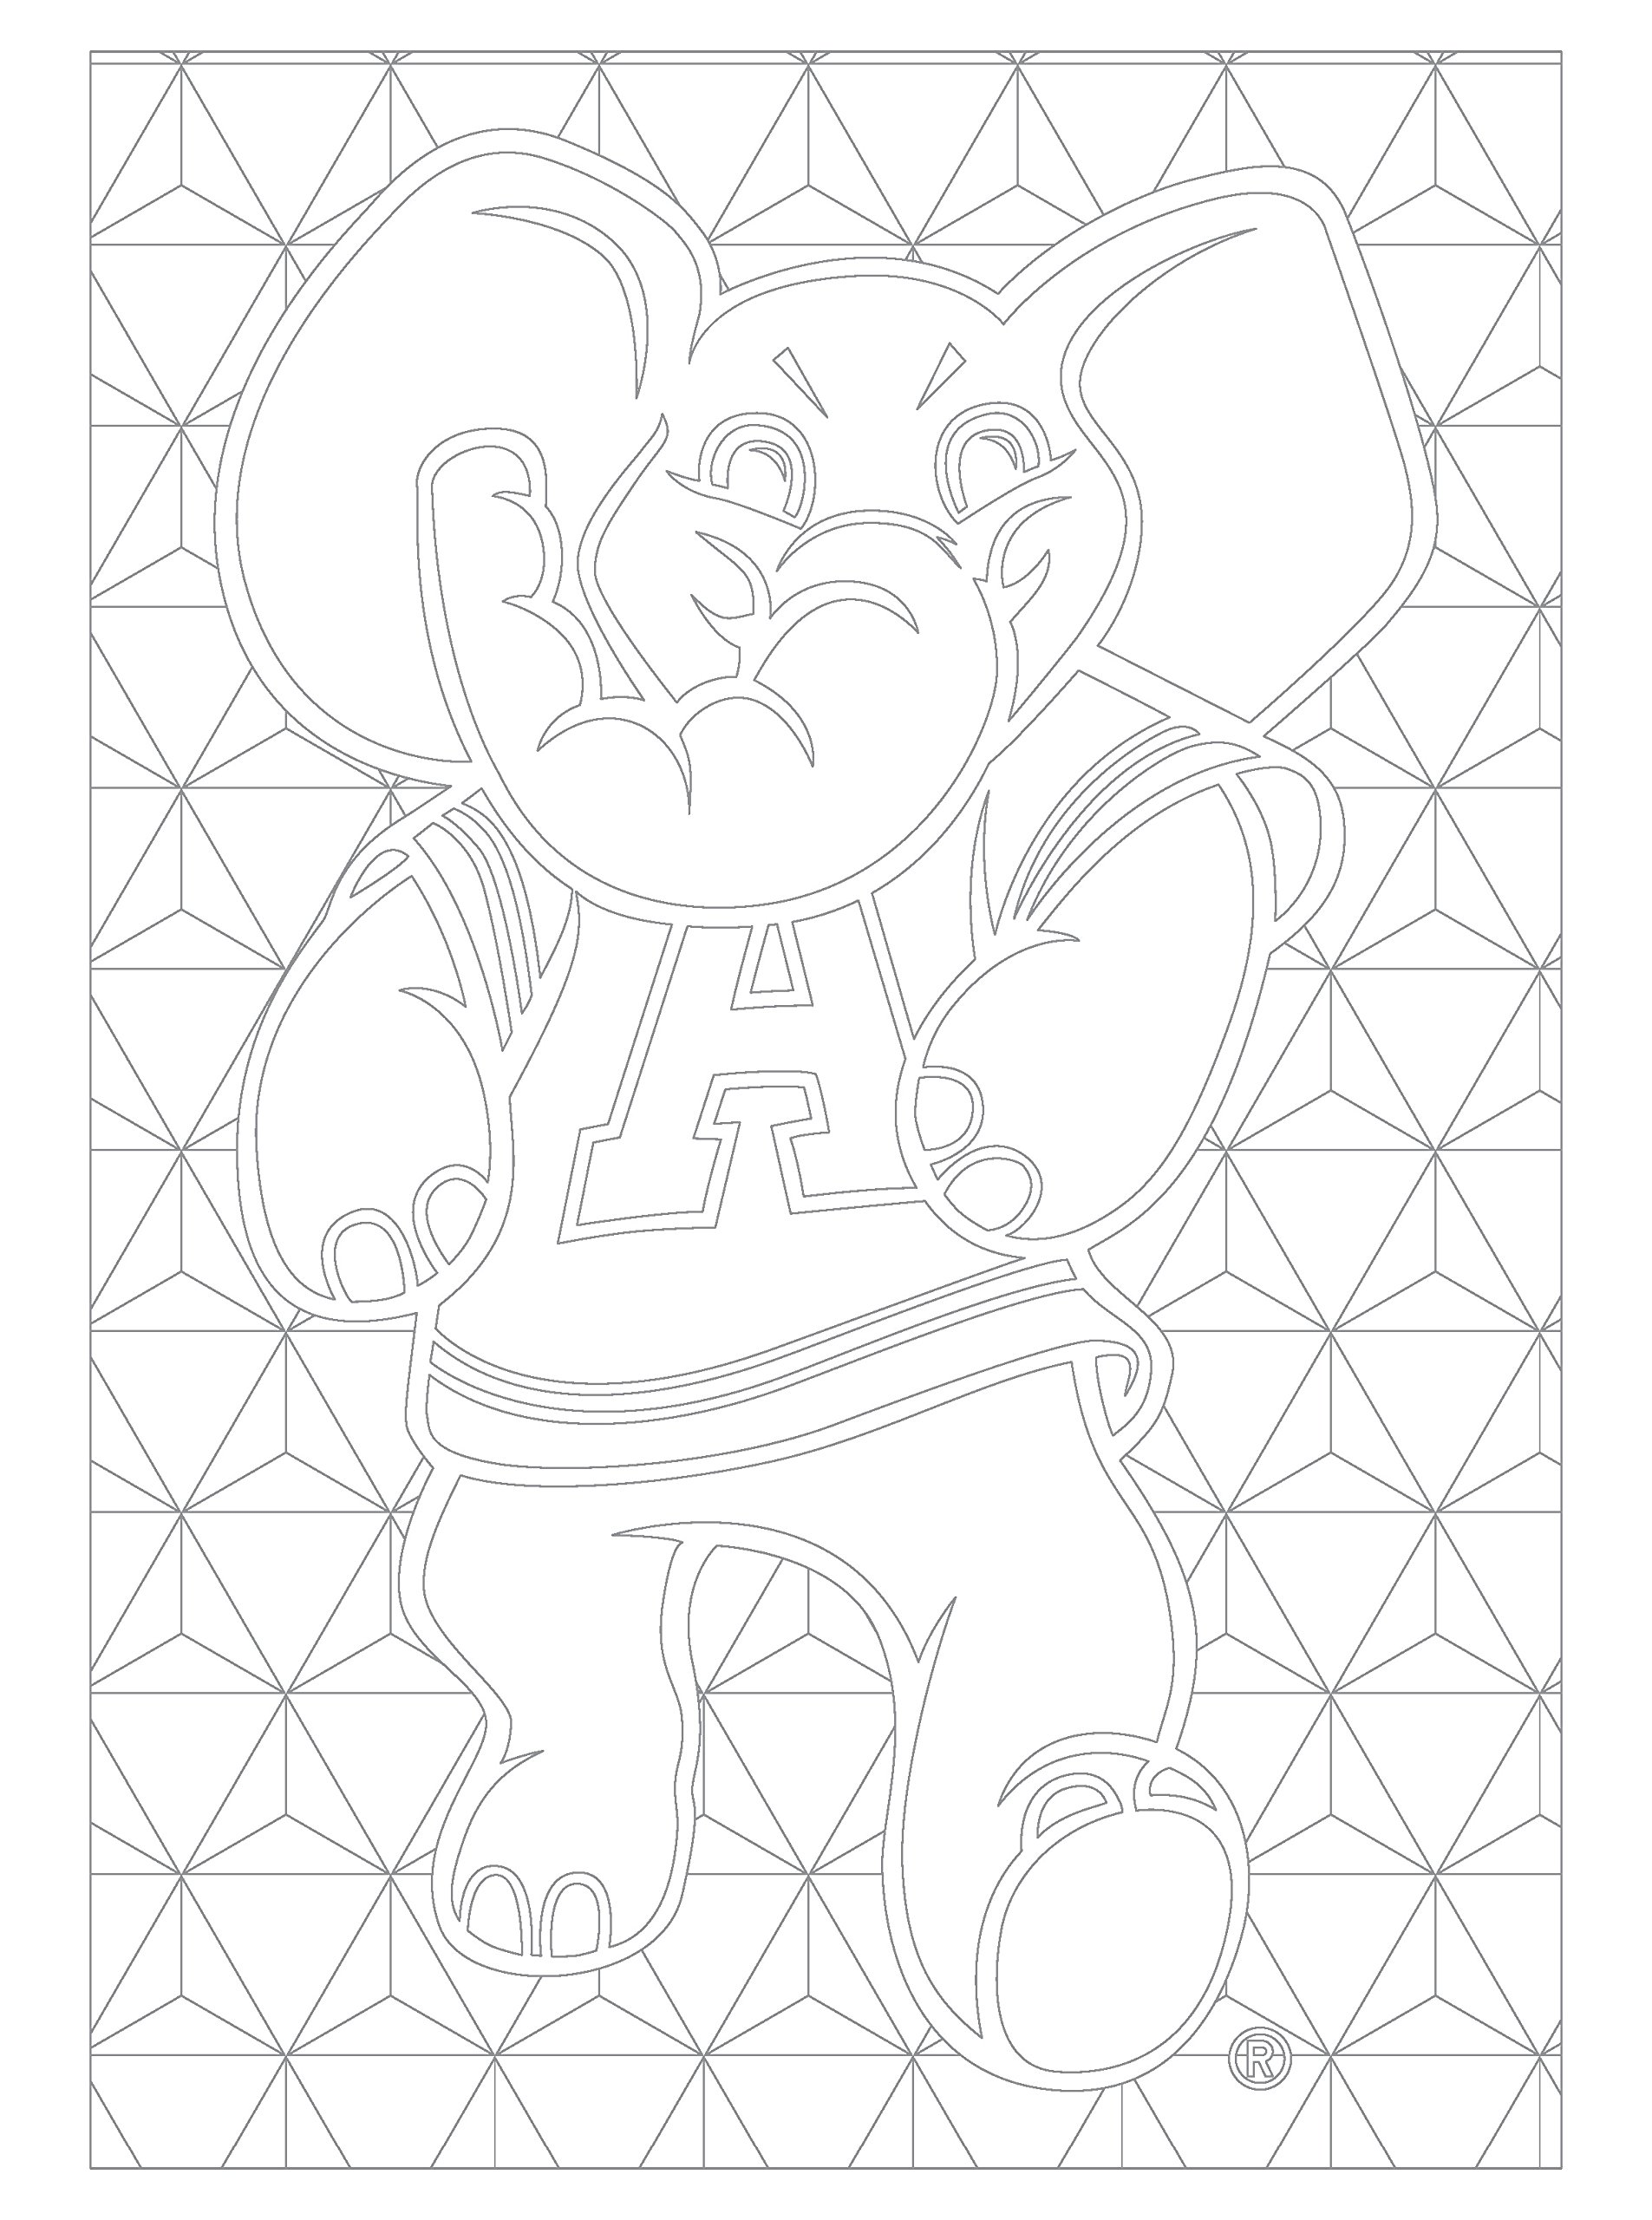 Alabama Adult Coloring Book: A Colorful Way to Cheer on Your ...